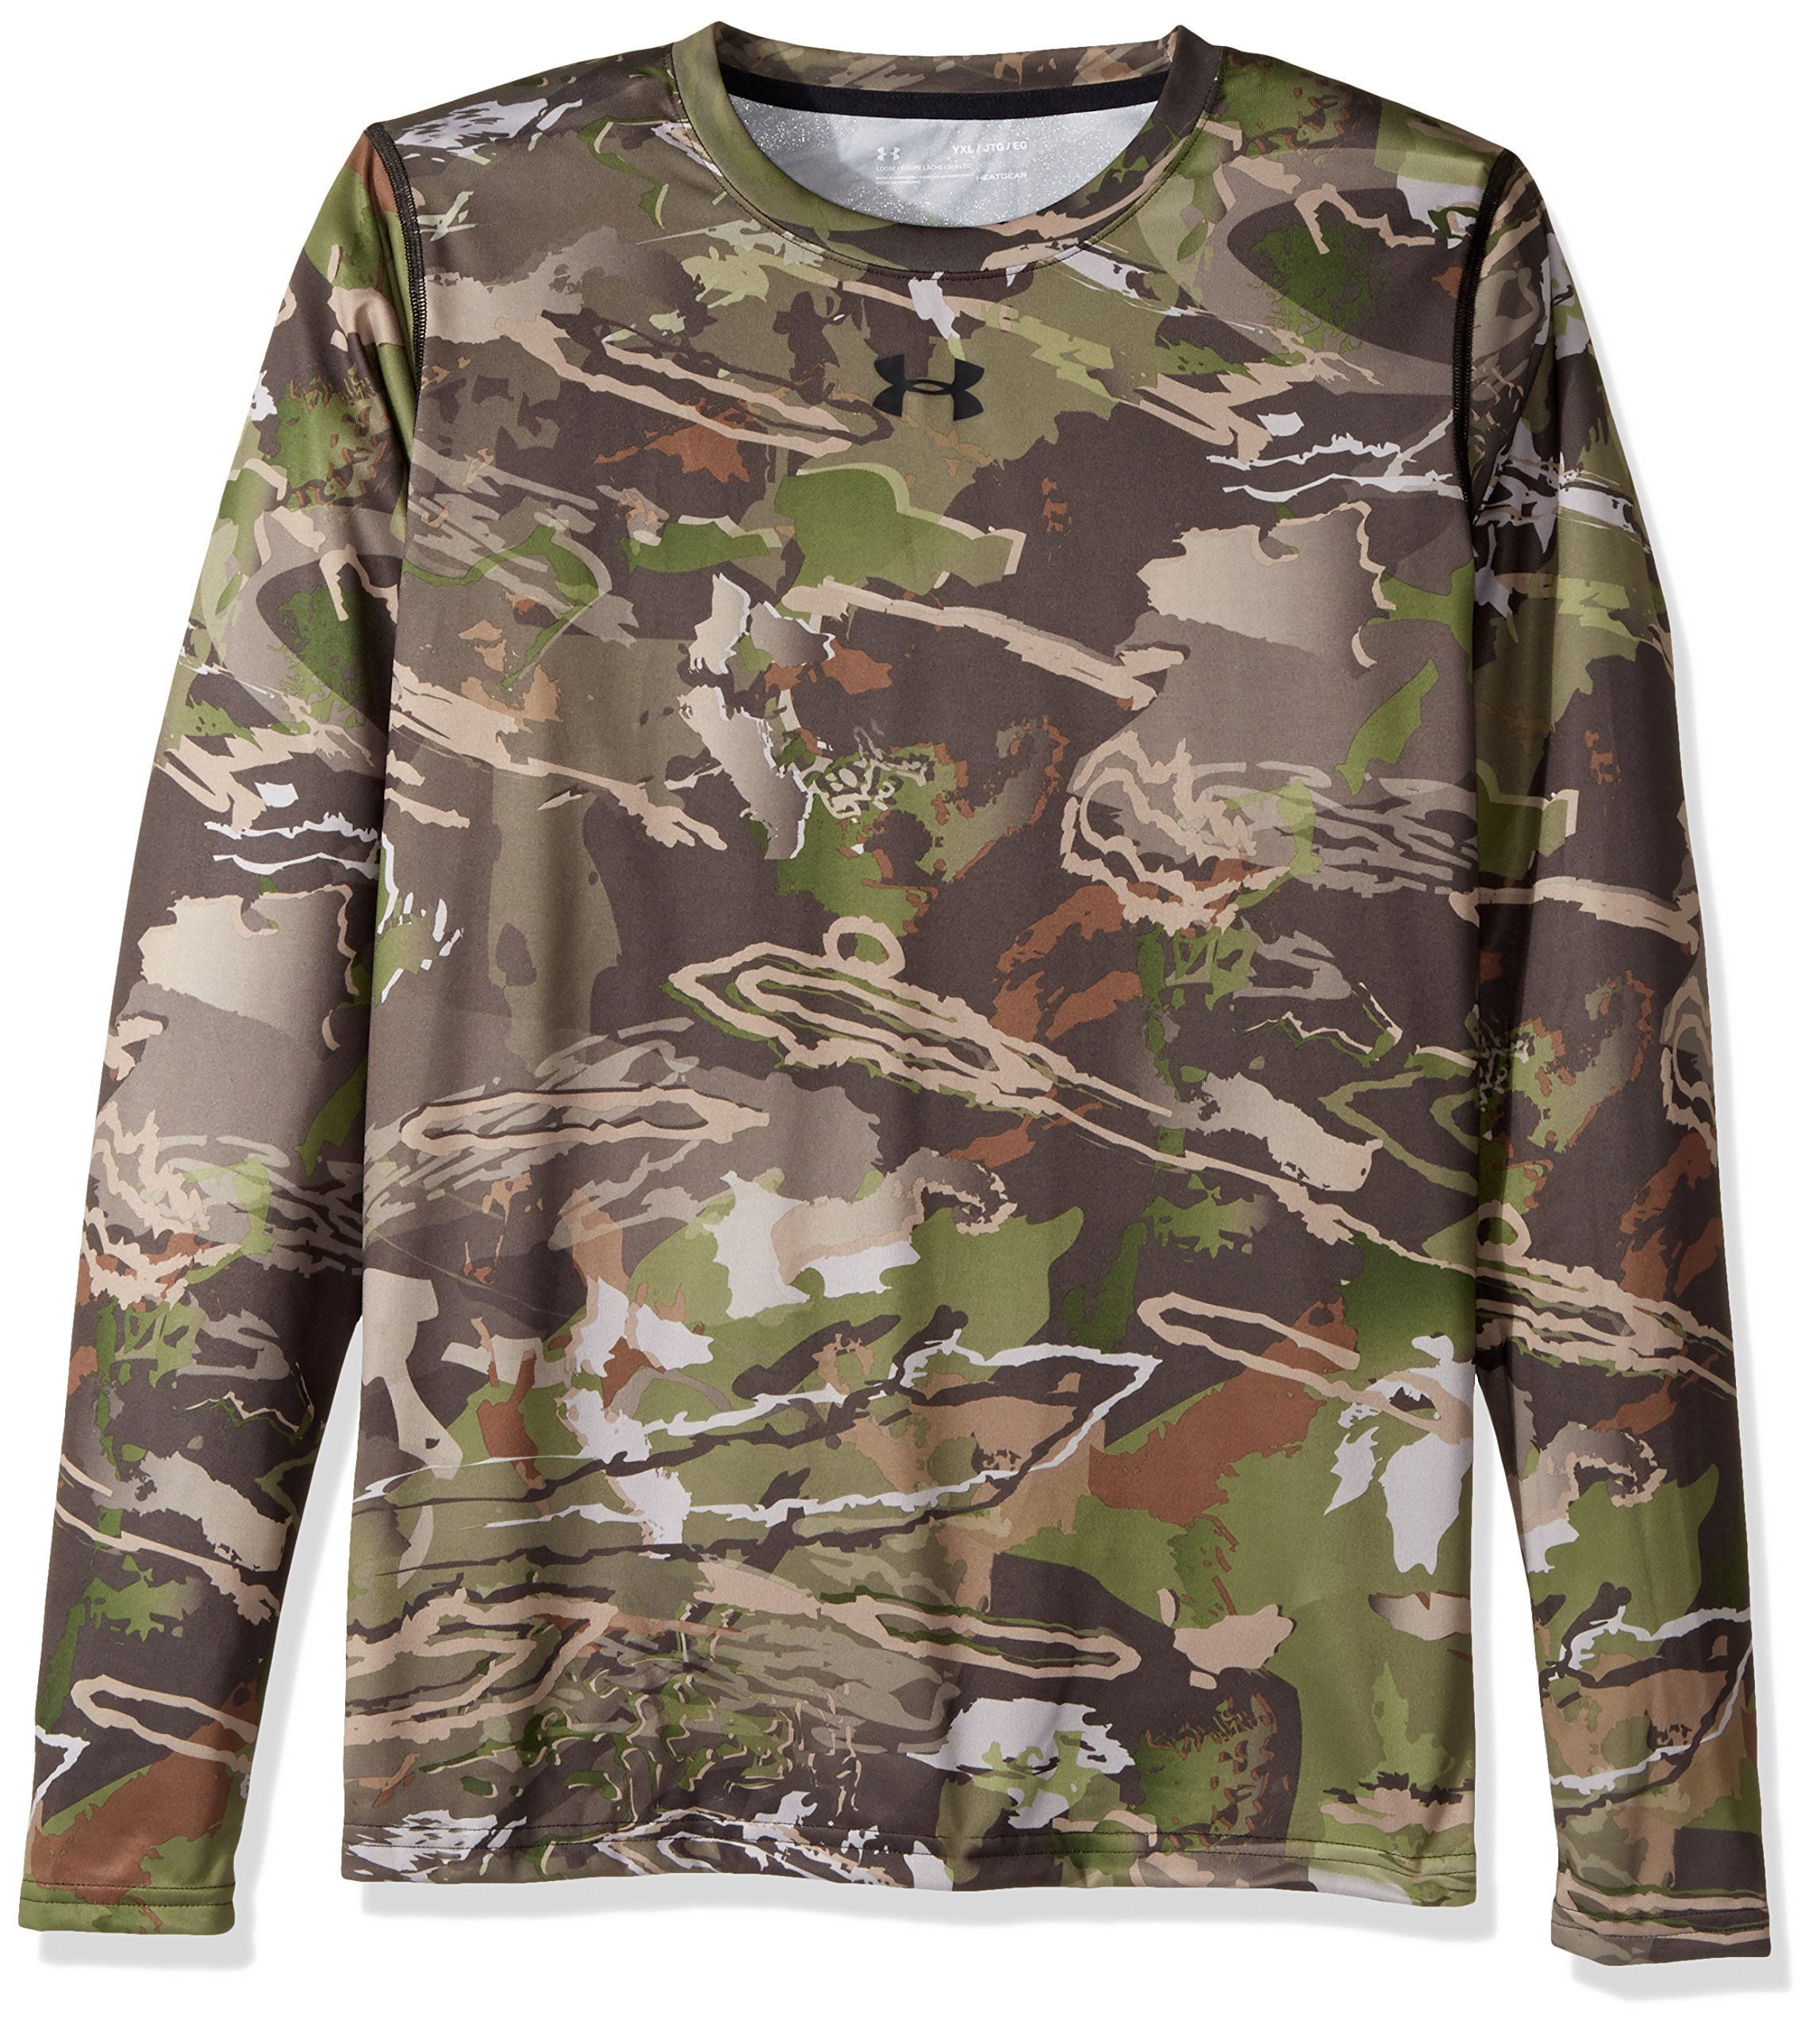 Under Armour Boys Scent Control Tech Long Sleeve Top,Ridge Reaper Camo Fo /Black, Youth Medium by Under Armour